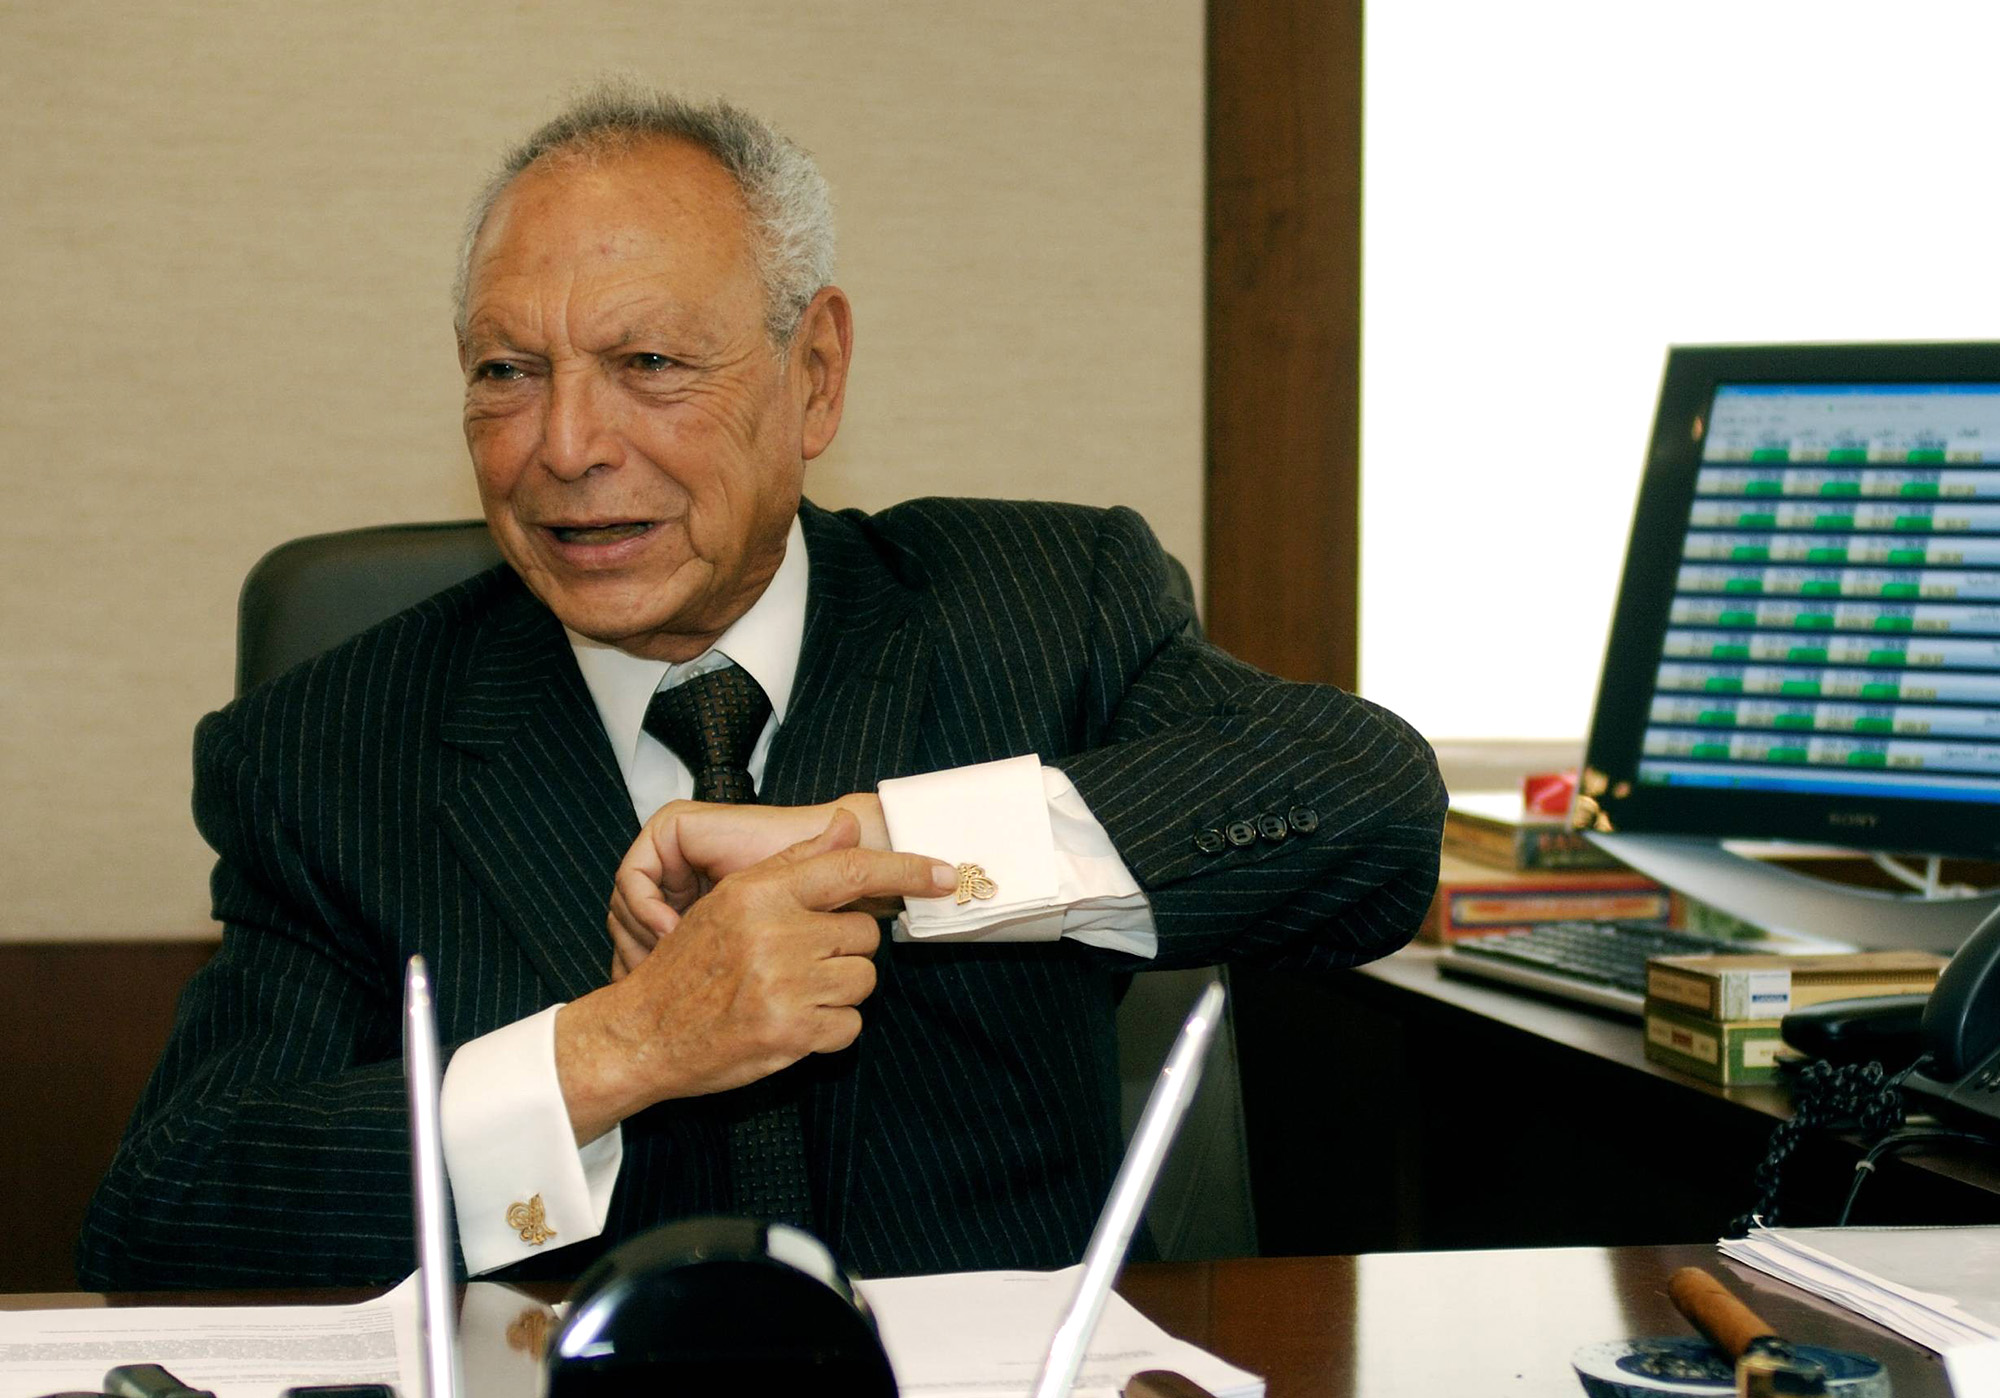 Onsi Sawiris, Patriarch of Egypt Billionaire Dynasty, Dies at 90 - Bloomberg